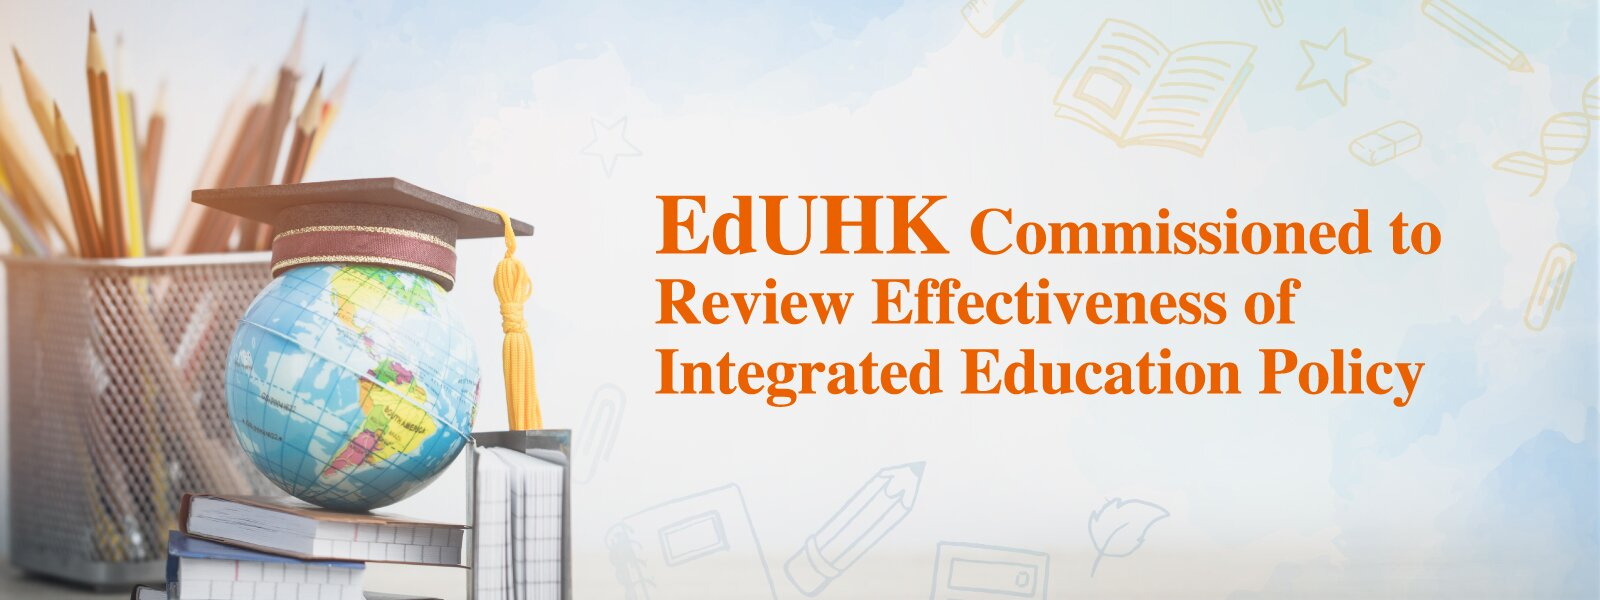 EdUHK Commissioned to Review Effectiveness of Integrated Education Policy